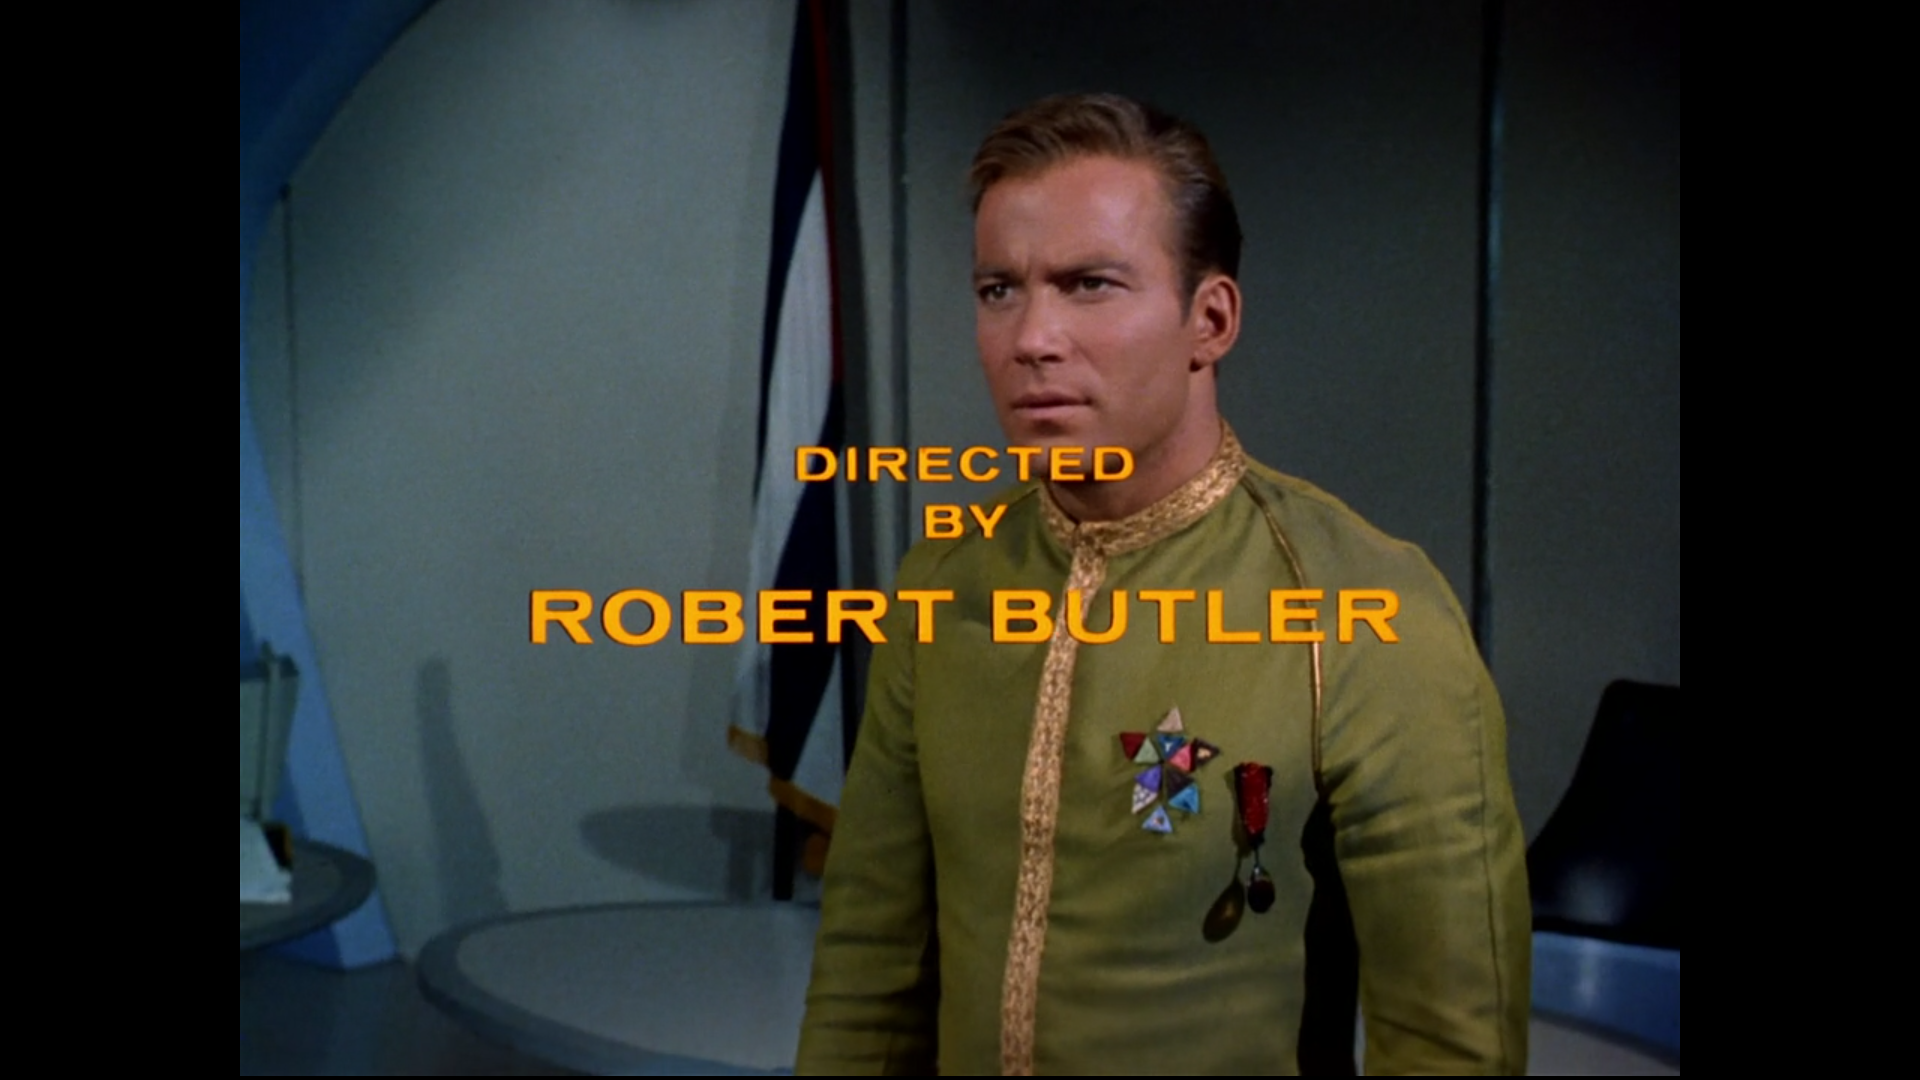 Discussion on this topic: Robert Butler, robert-butler/